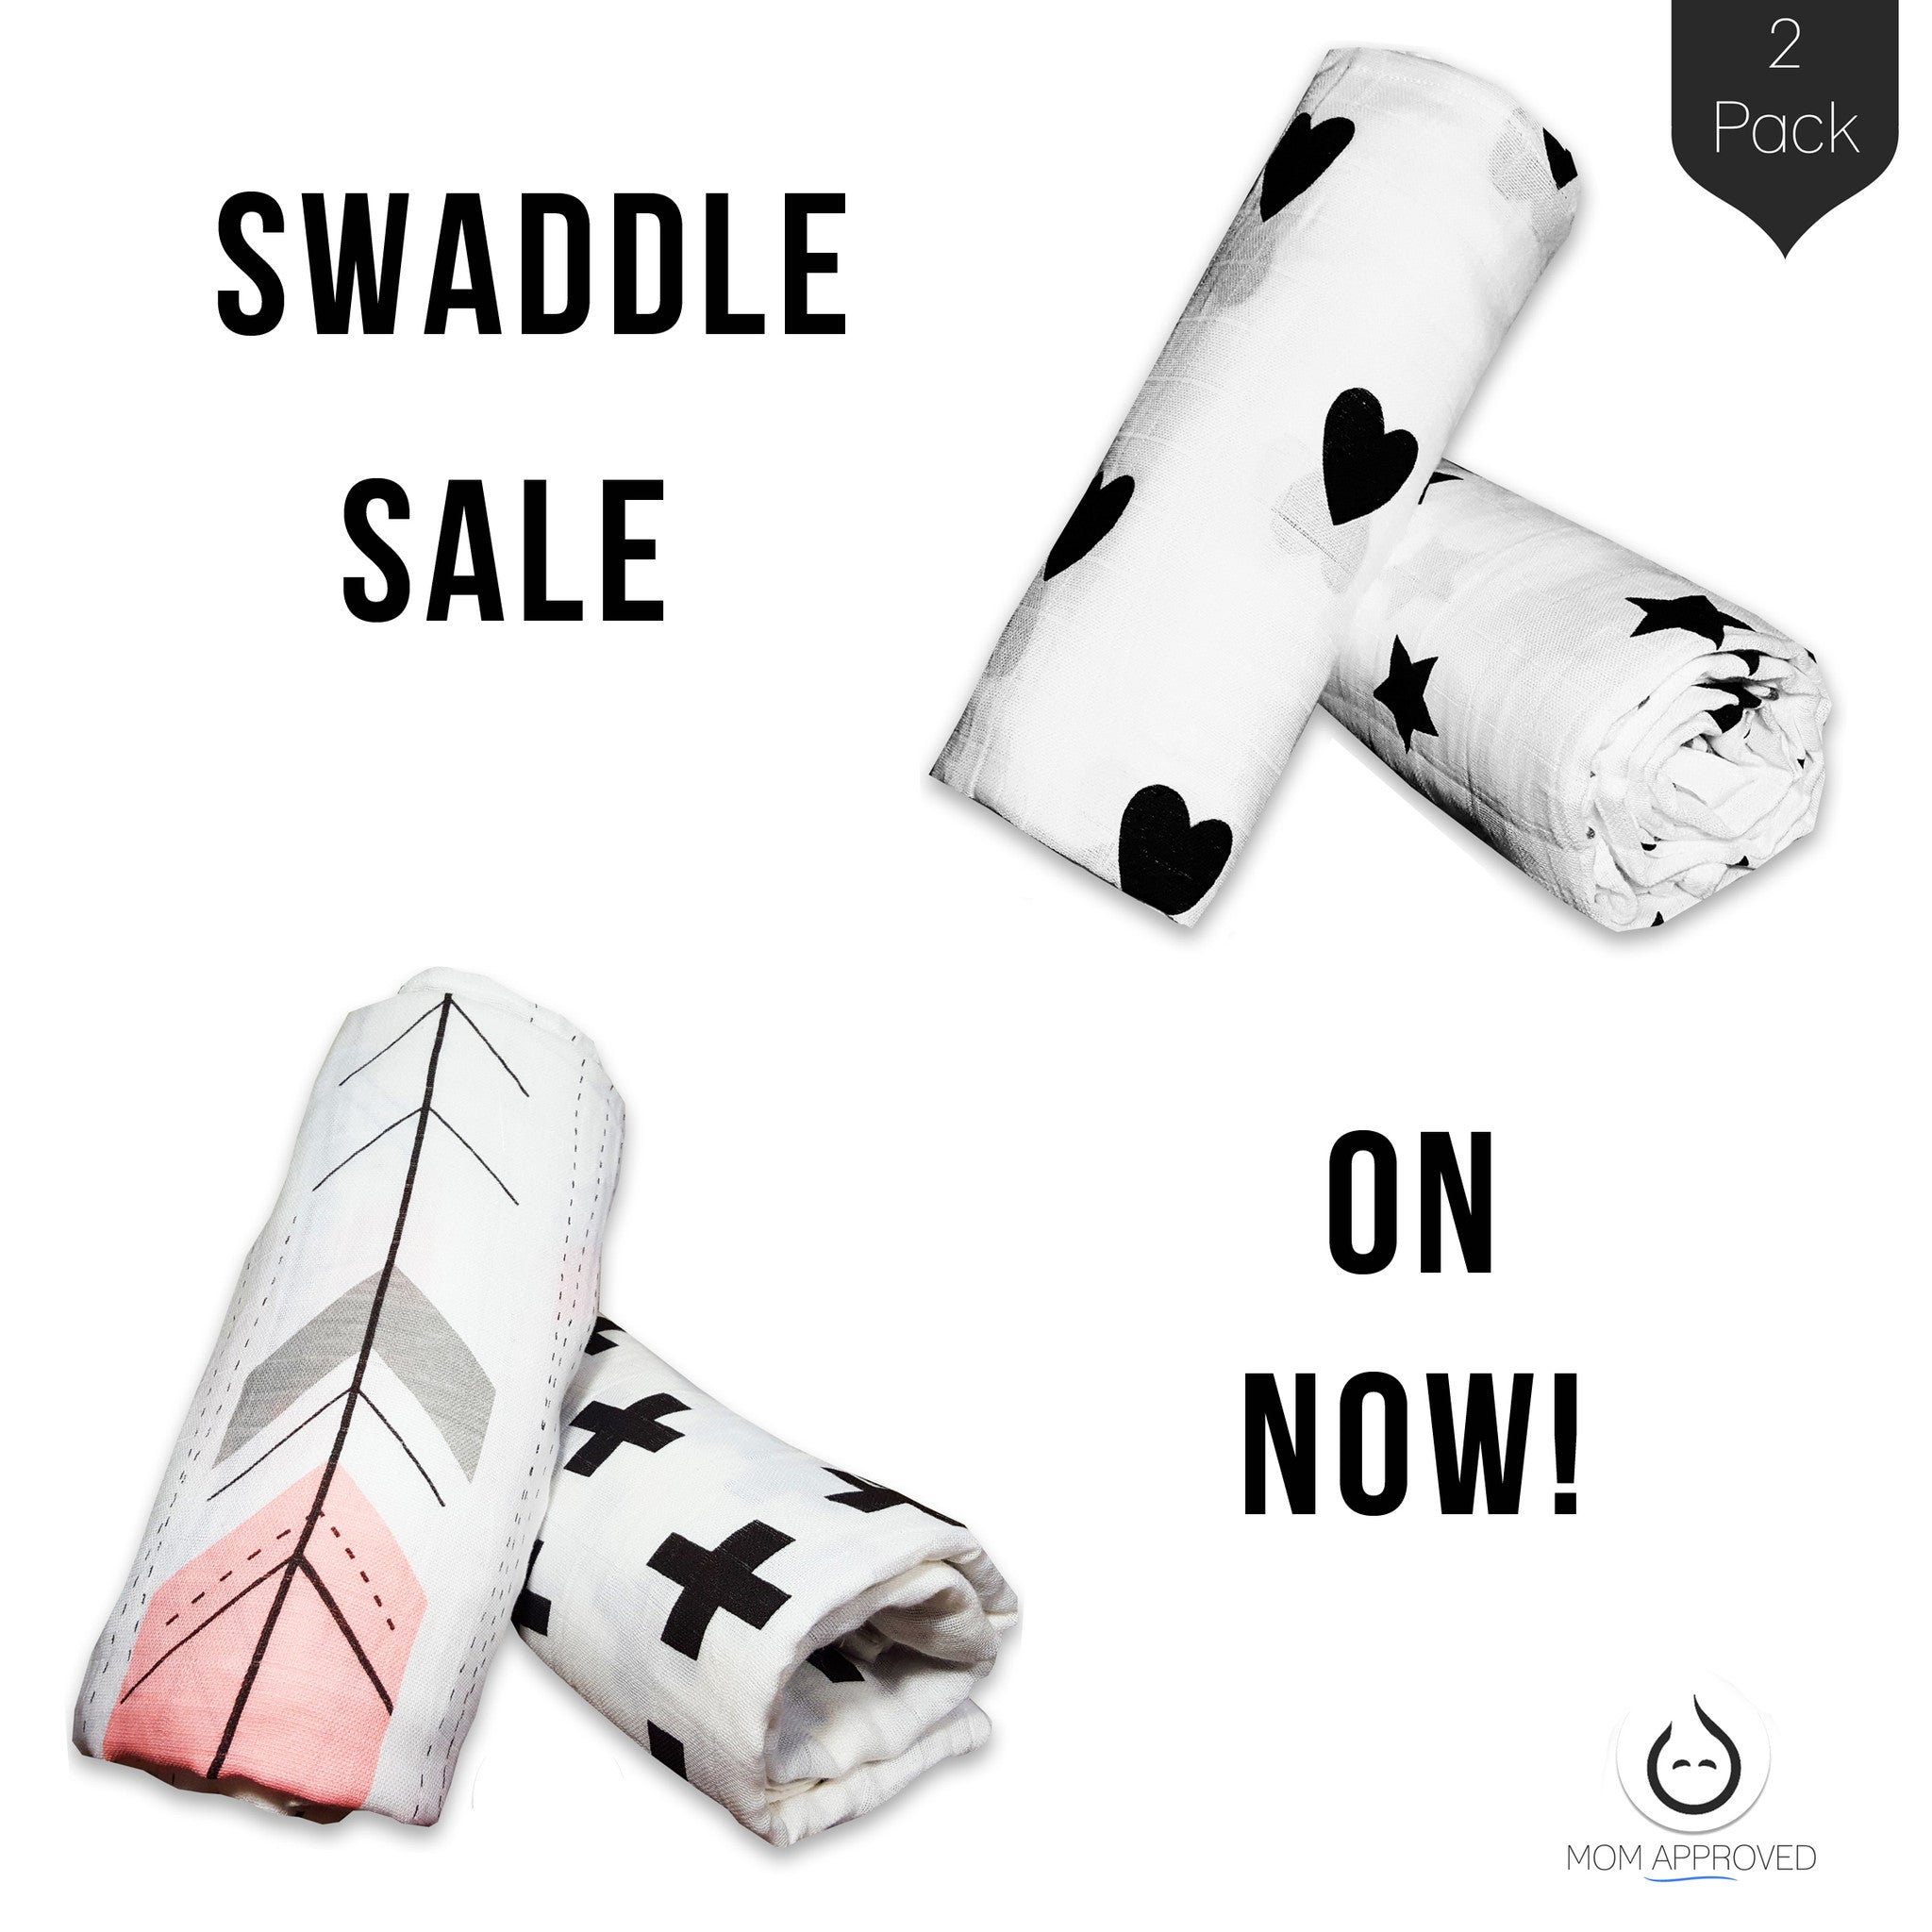 Two Favorite Swaddle Sets on Sale Now!